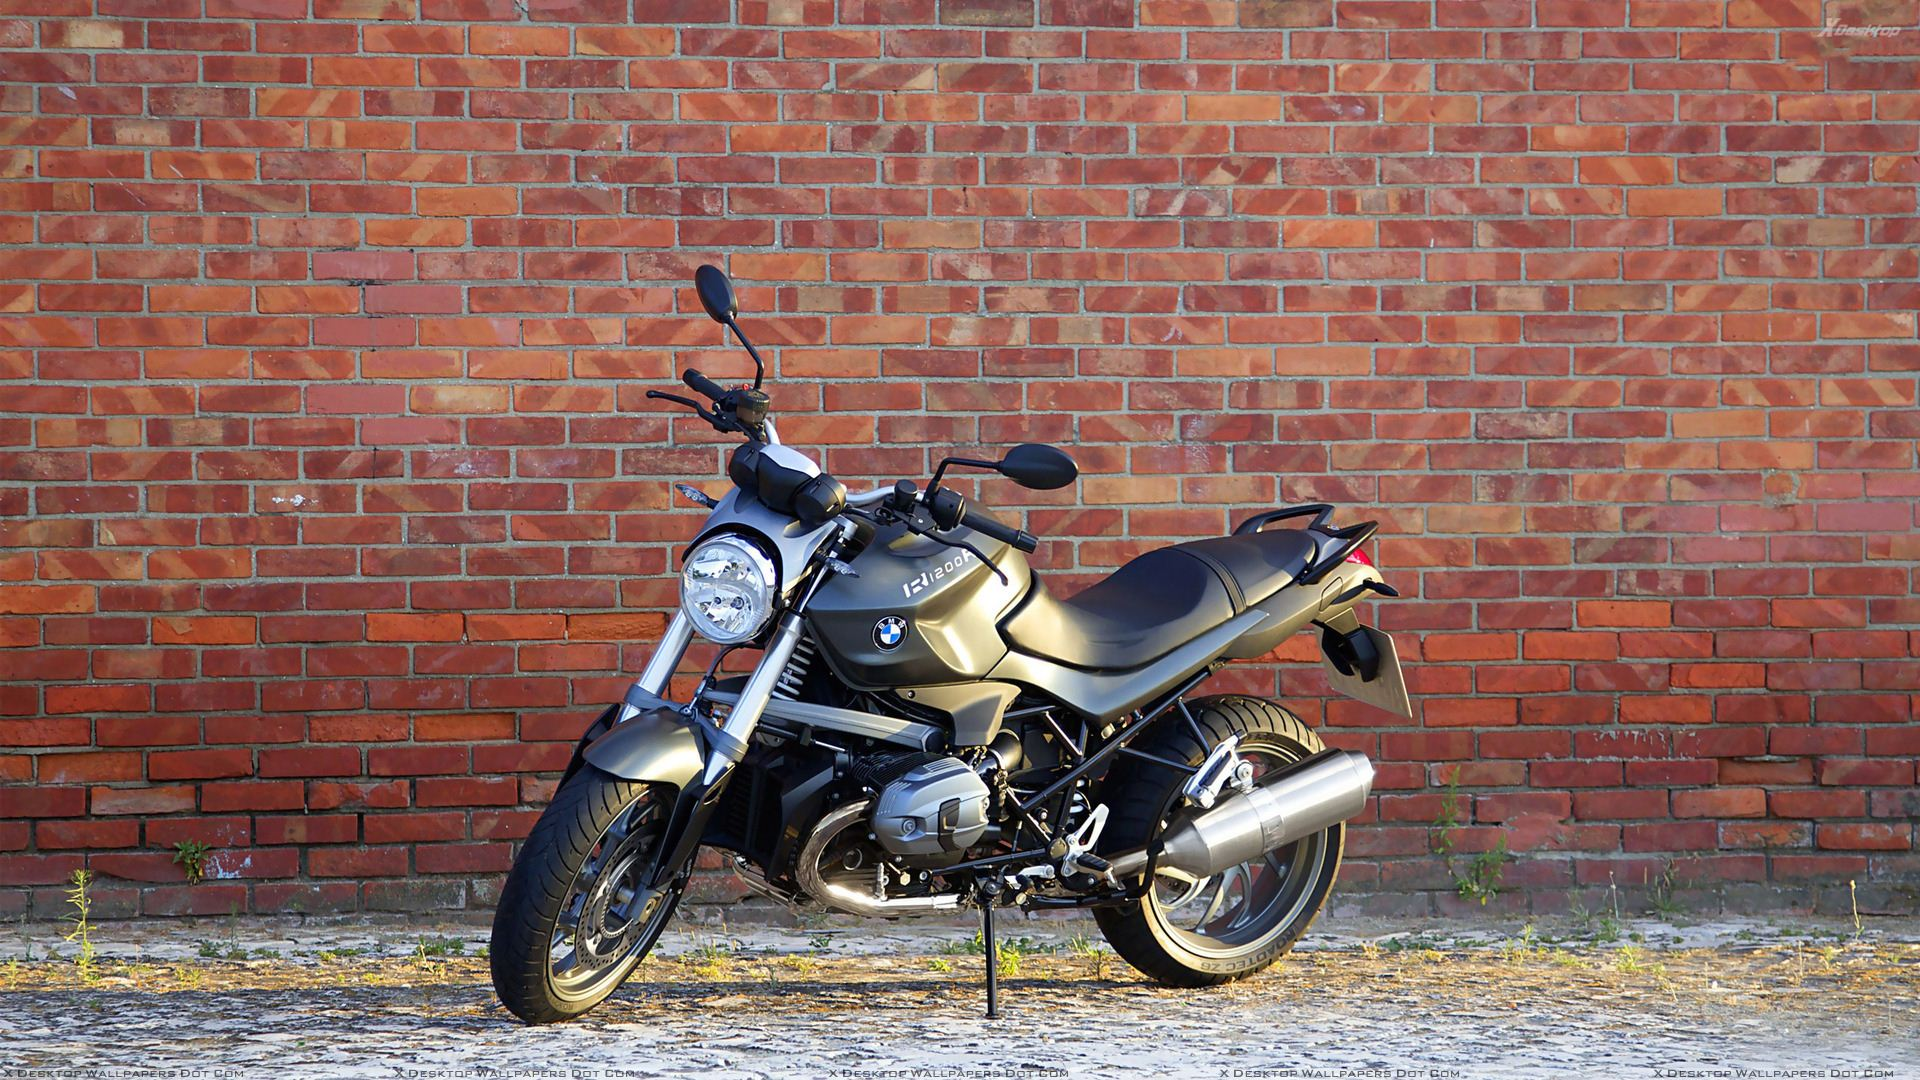 BMW R1200R HQ Wallpapers